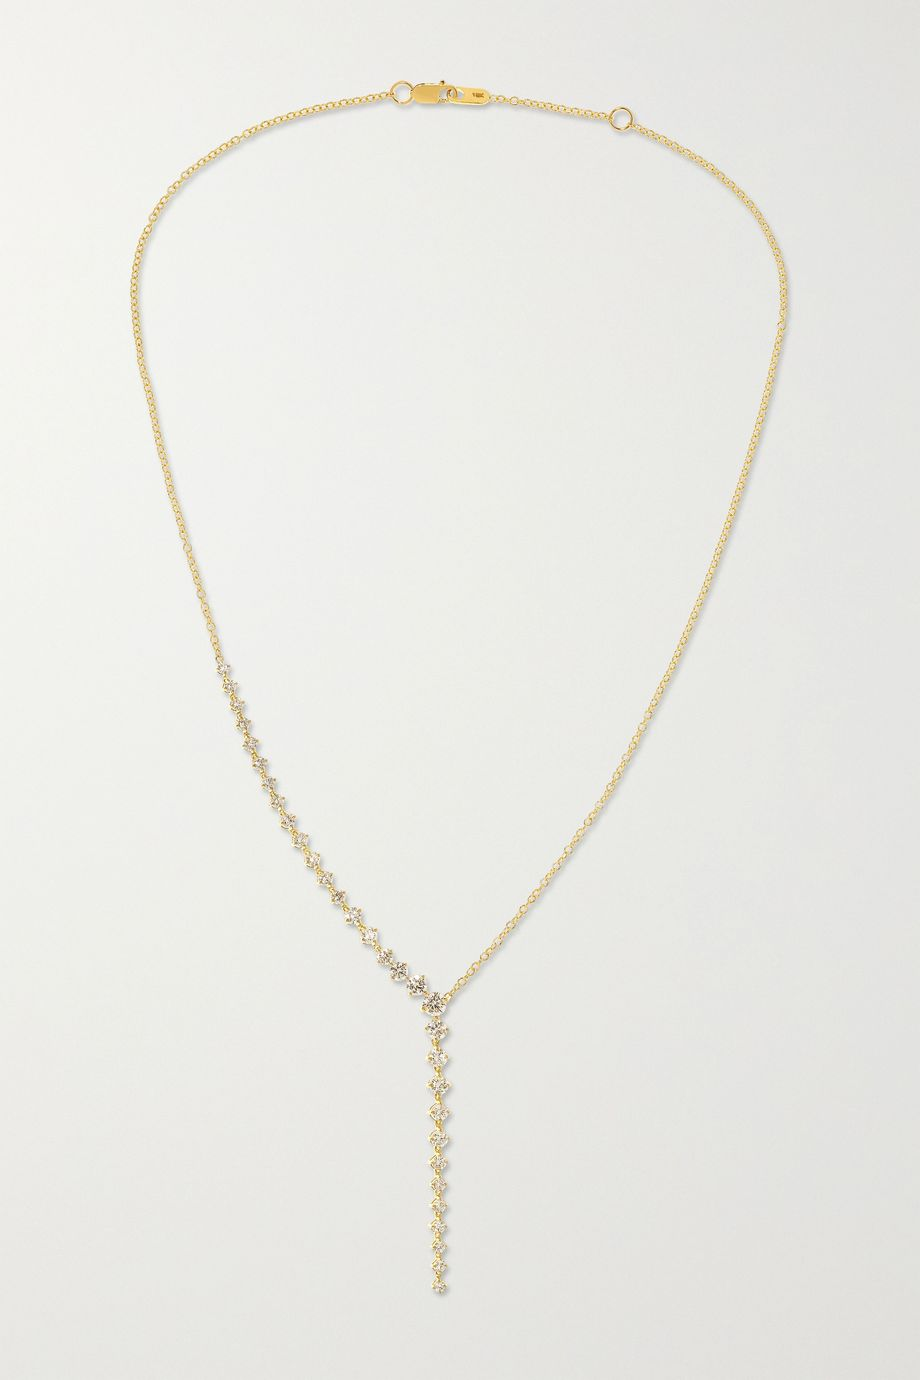 Melissa Kaye Aria Cascade 18-karat gold diamond necklace